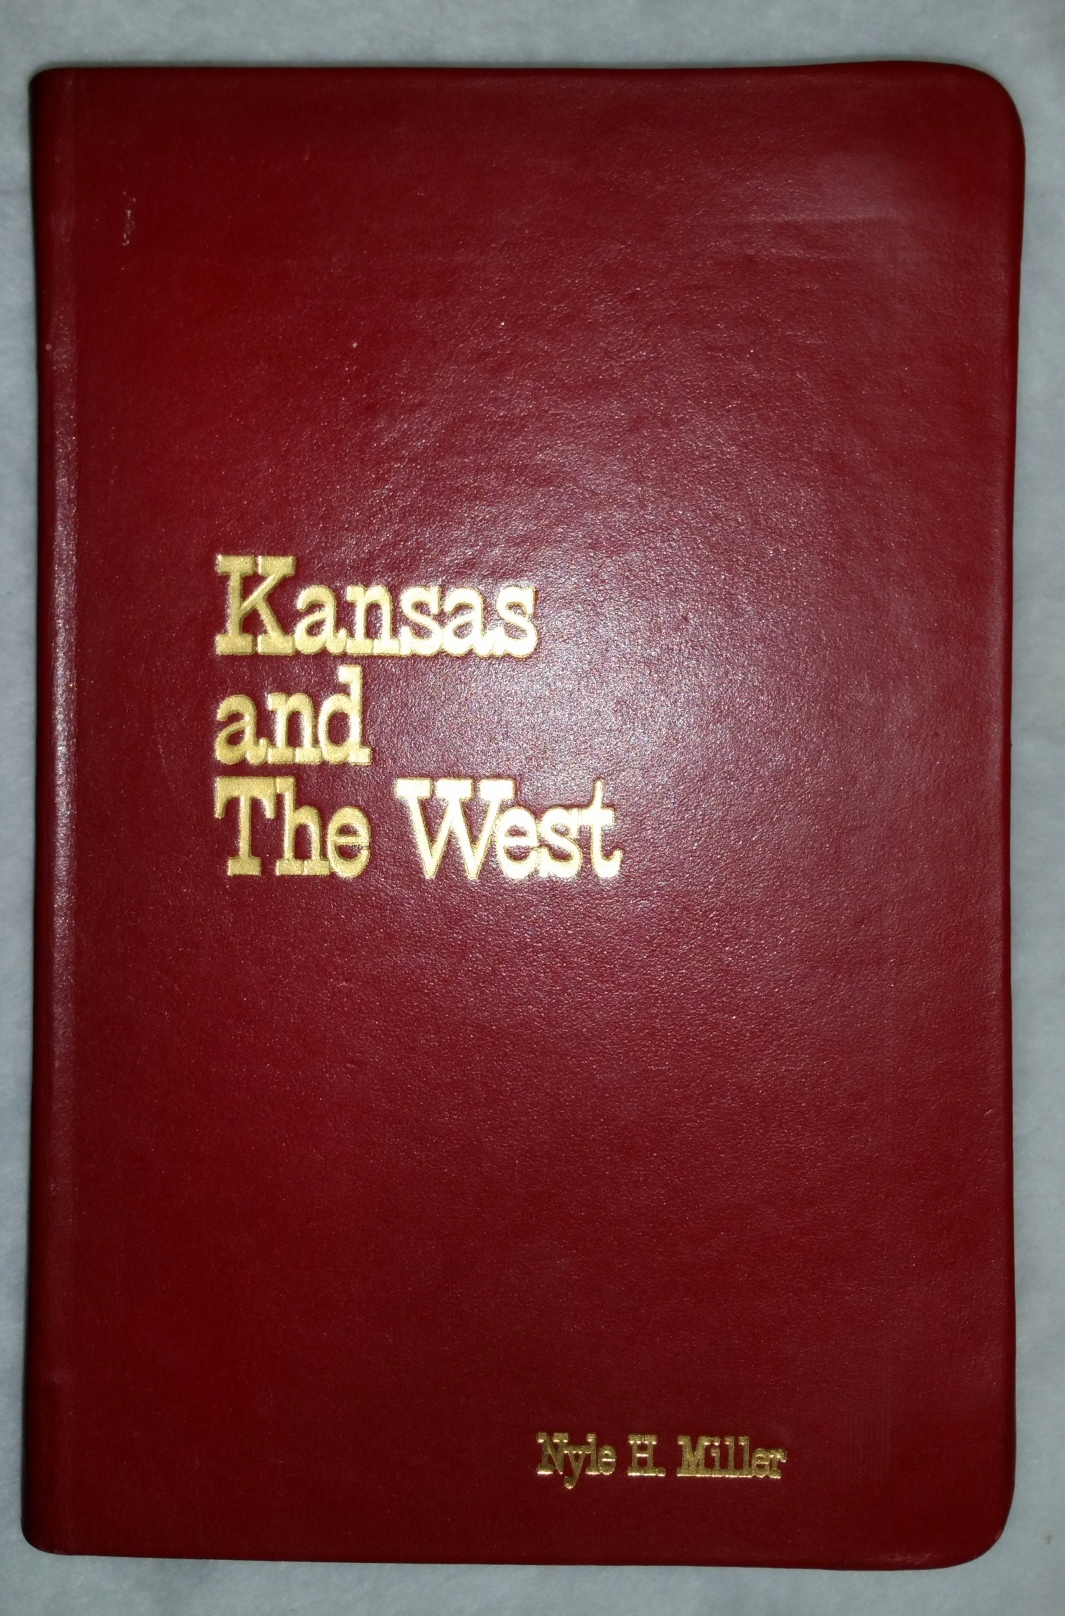 Image for Kansas and the West: Bicentennial Essays in Honor of Nyle H. Miller (Nyle Miller's Copy presented to Him By the Editors) [with] Nyle Miller, His Book:  Remembrances and Wishes from His Friends, December 29, 1976 (two volumes)